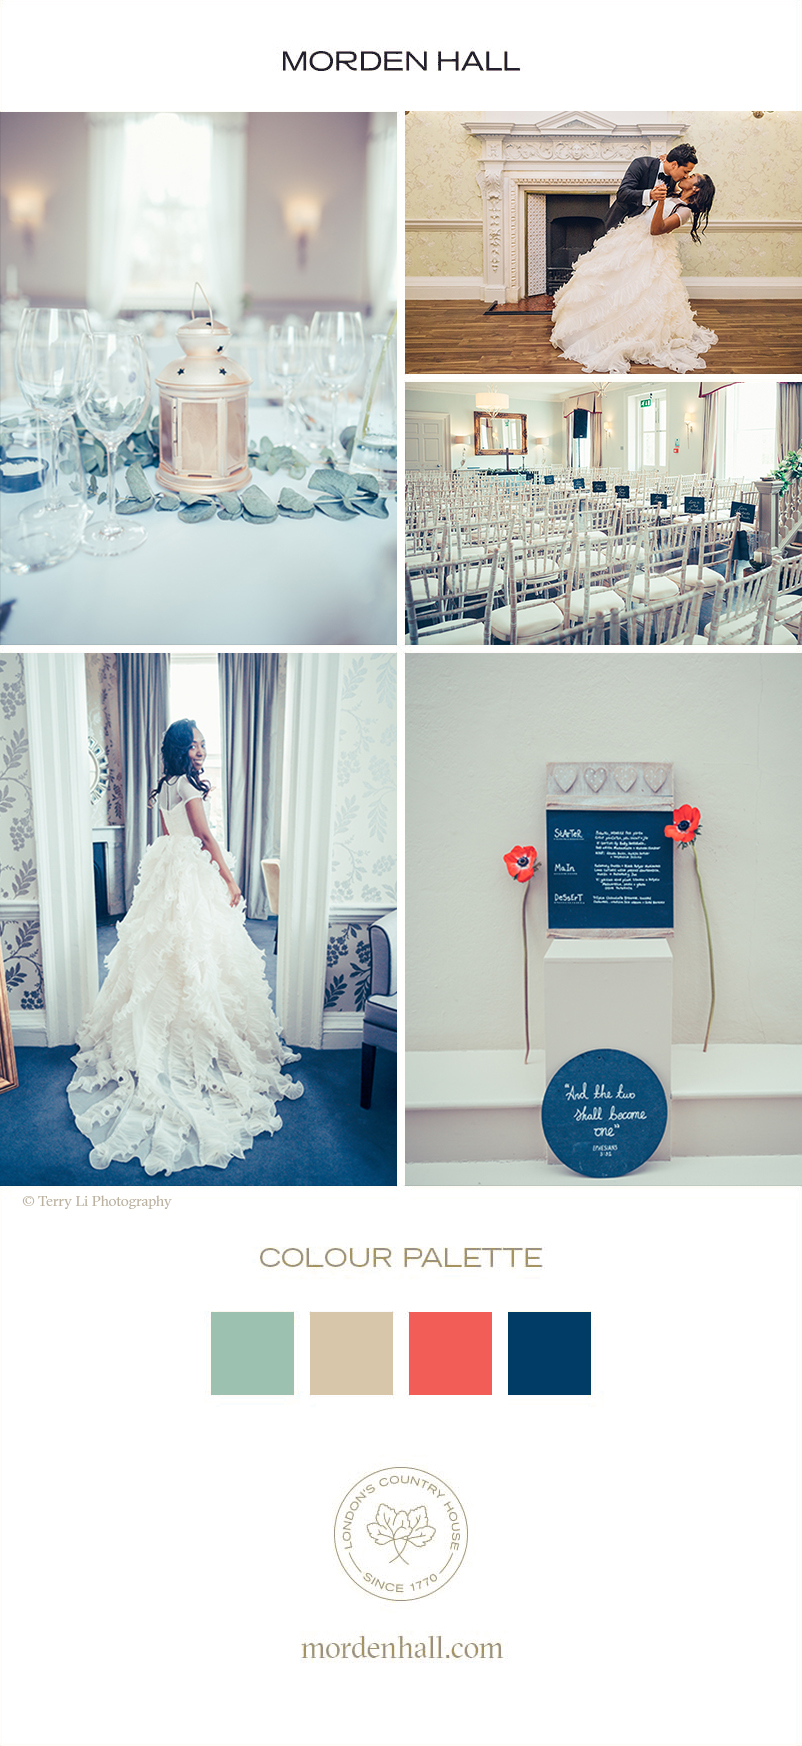 Be inspired by Angela and Praj's wedding ideas